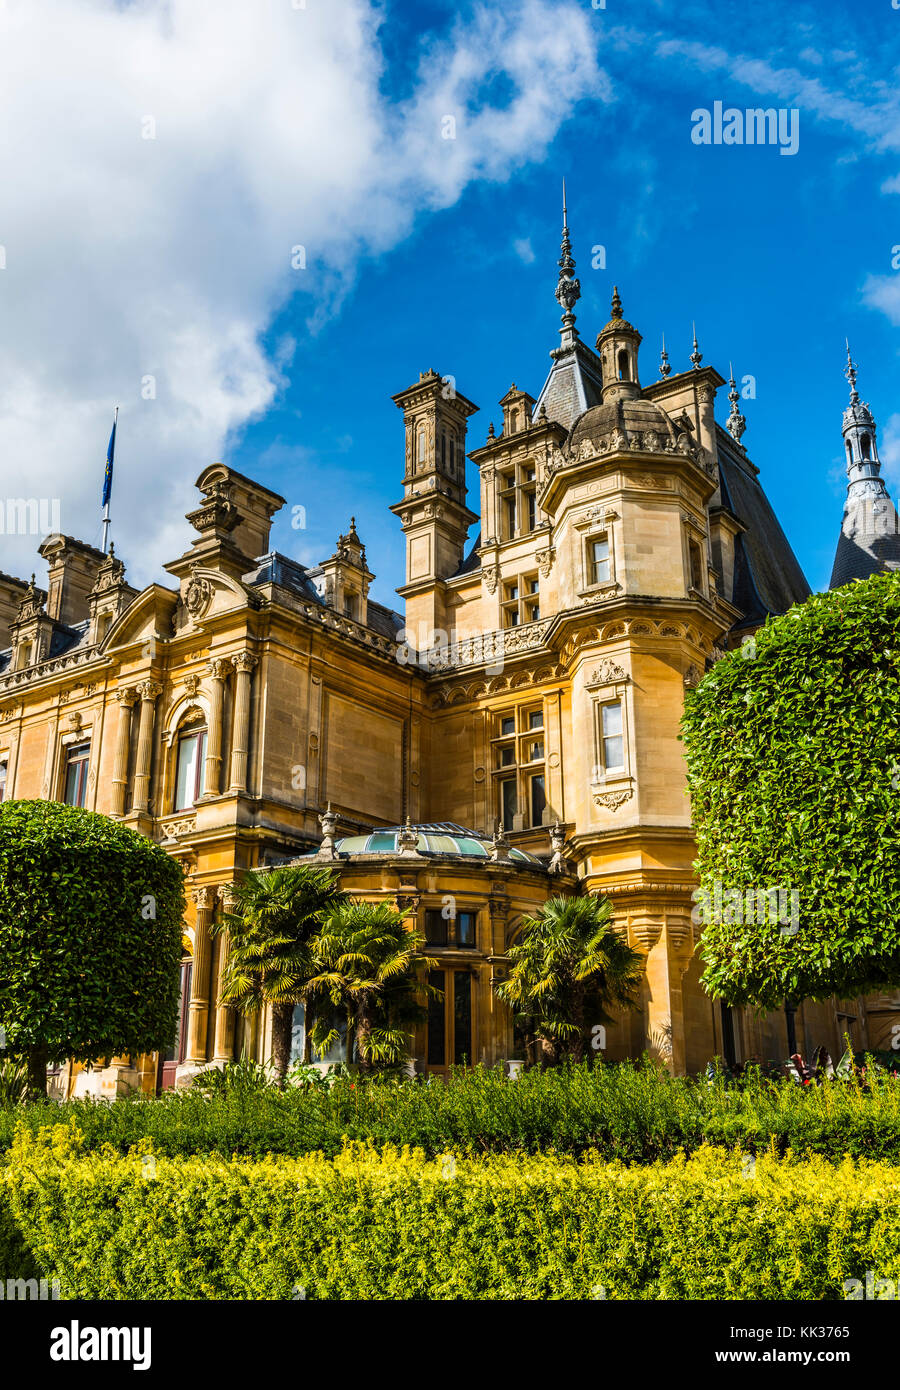 Details of the French-style chateau at Waddesdon Manor, Buckinghamshire, UK - Stock Image